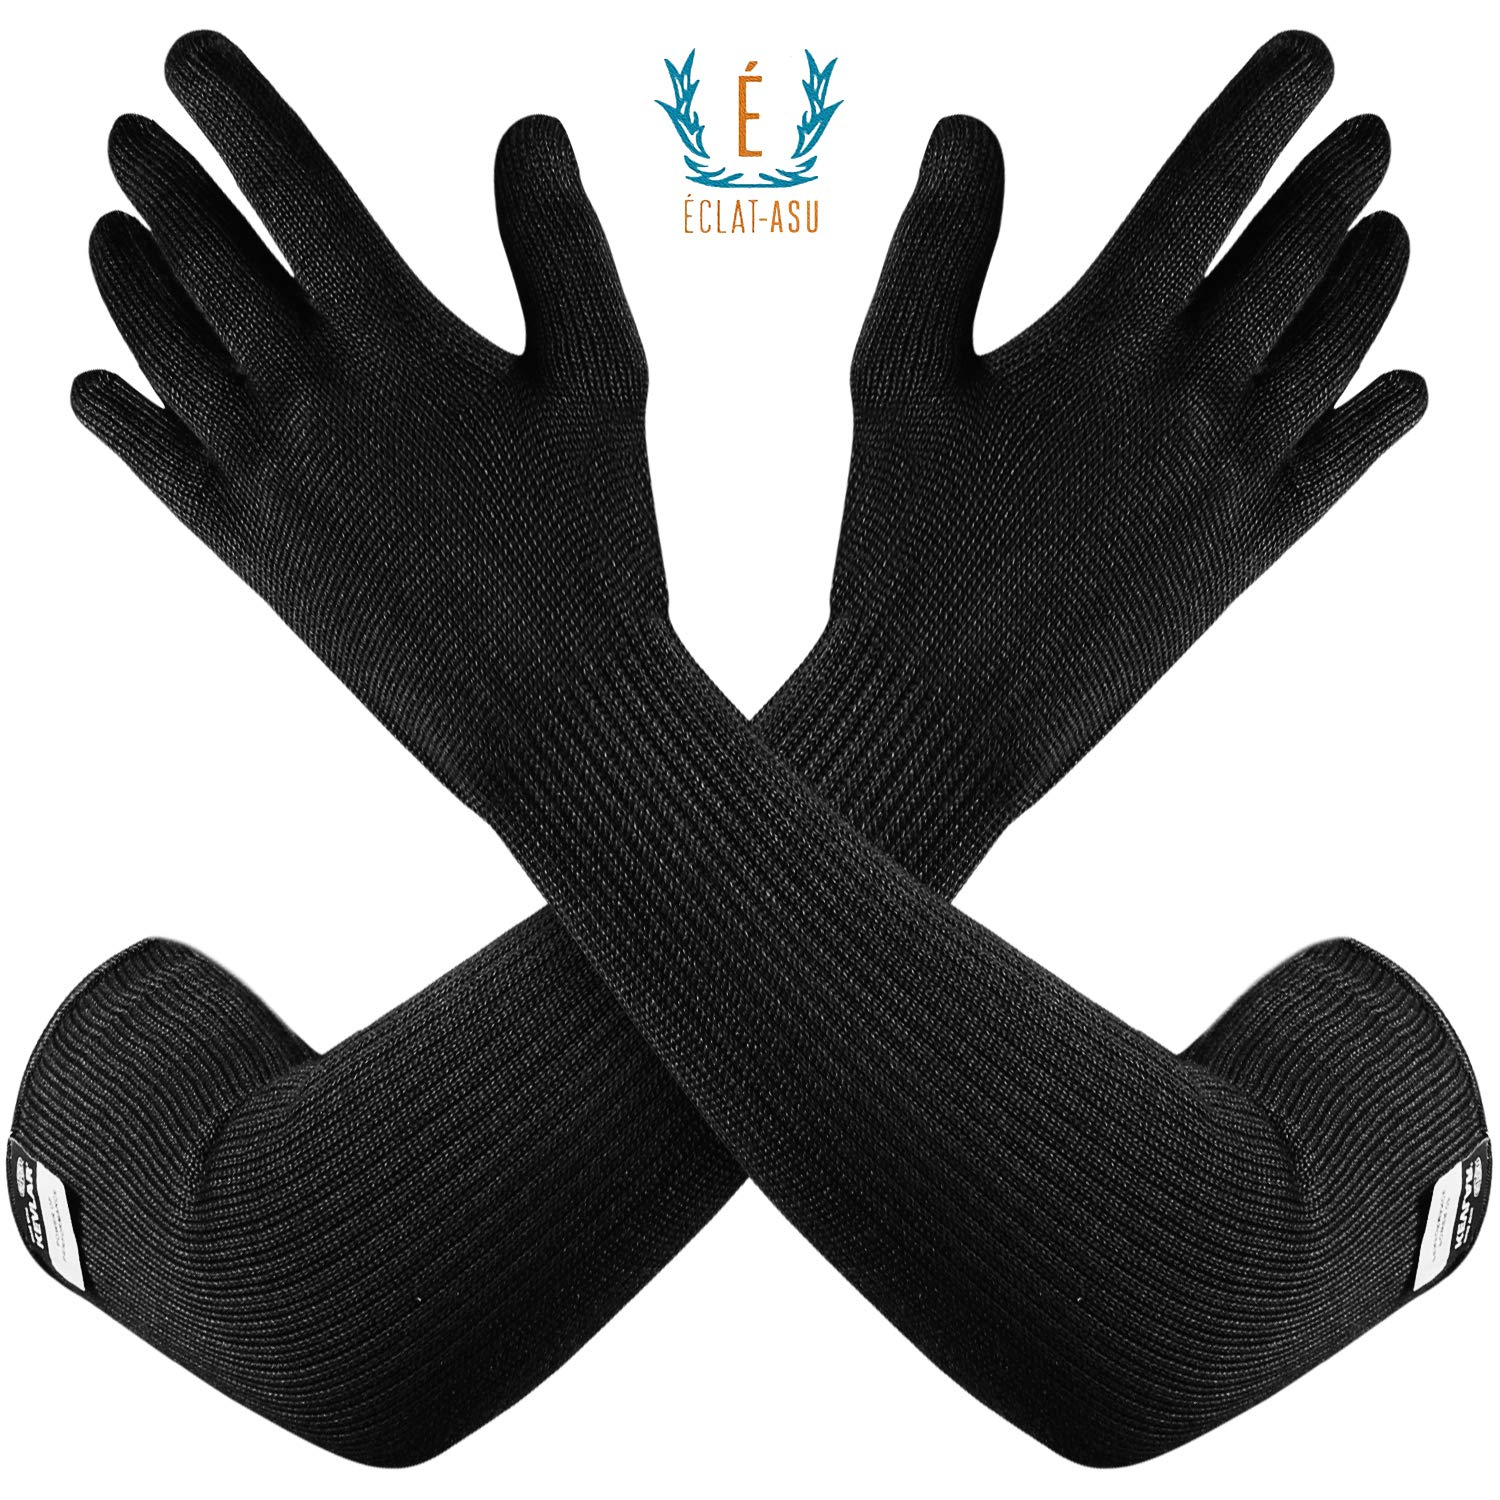 100% Kevlar Glove Arm Sleeves by Dupont- Cut, Scratch & Heat Resistant Arm Sleeve, Arm Safety Sleeves- Long Arm Protectors- Flexible & Washable- Black, 1 Pair by ECLAT-ASU